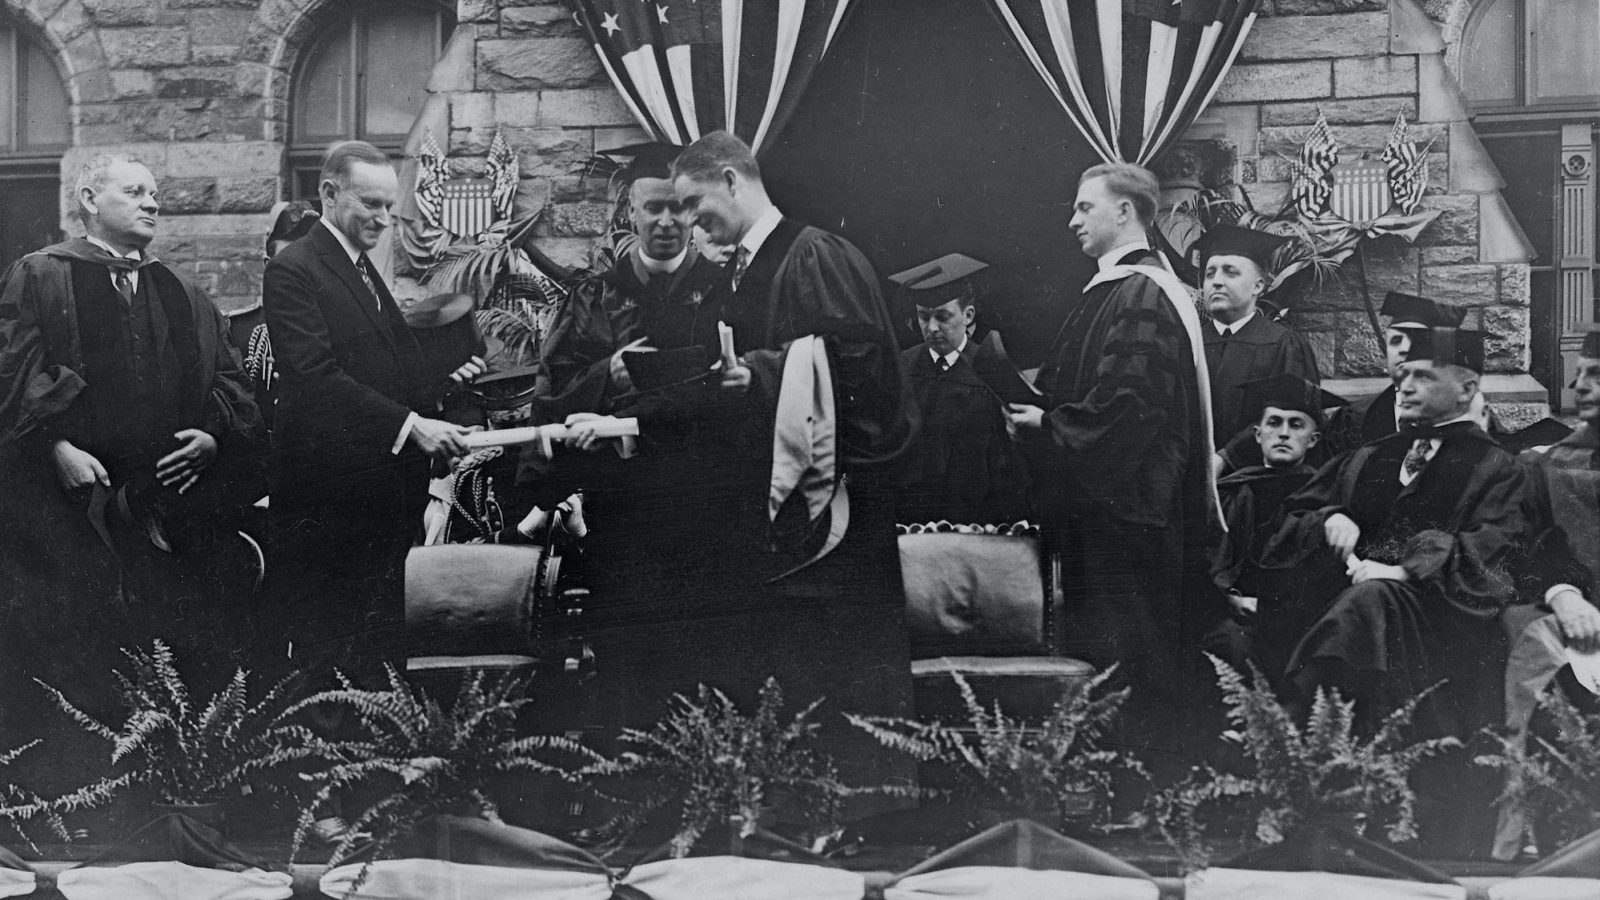 A black and white photo of President Calvin Coolidge participating in a Georgetown Commencement ceremony surrounded by individuals